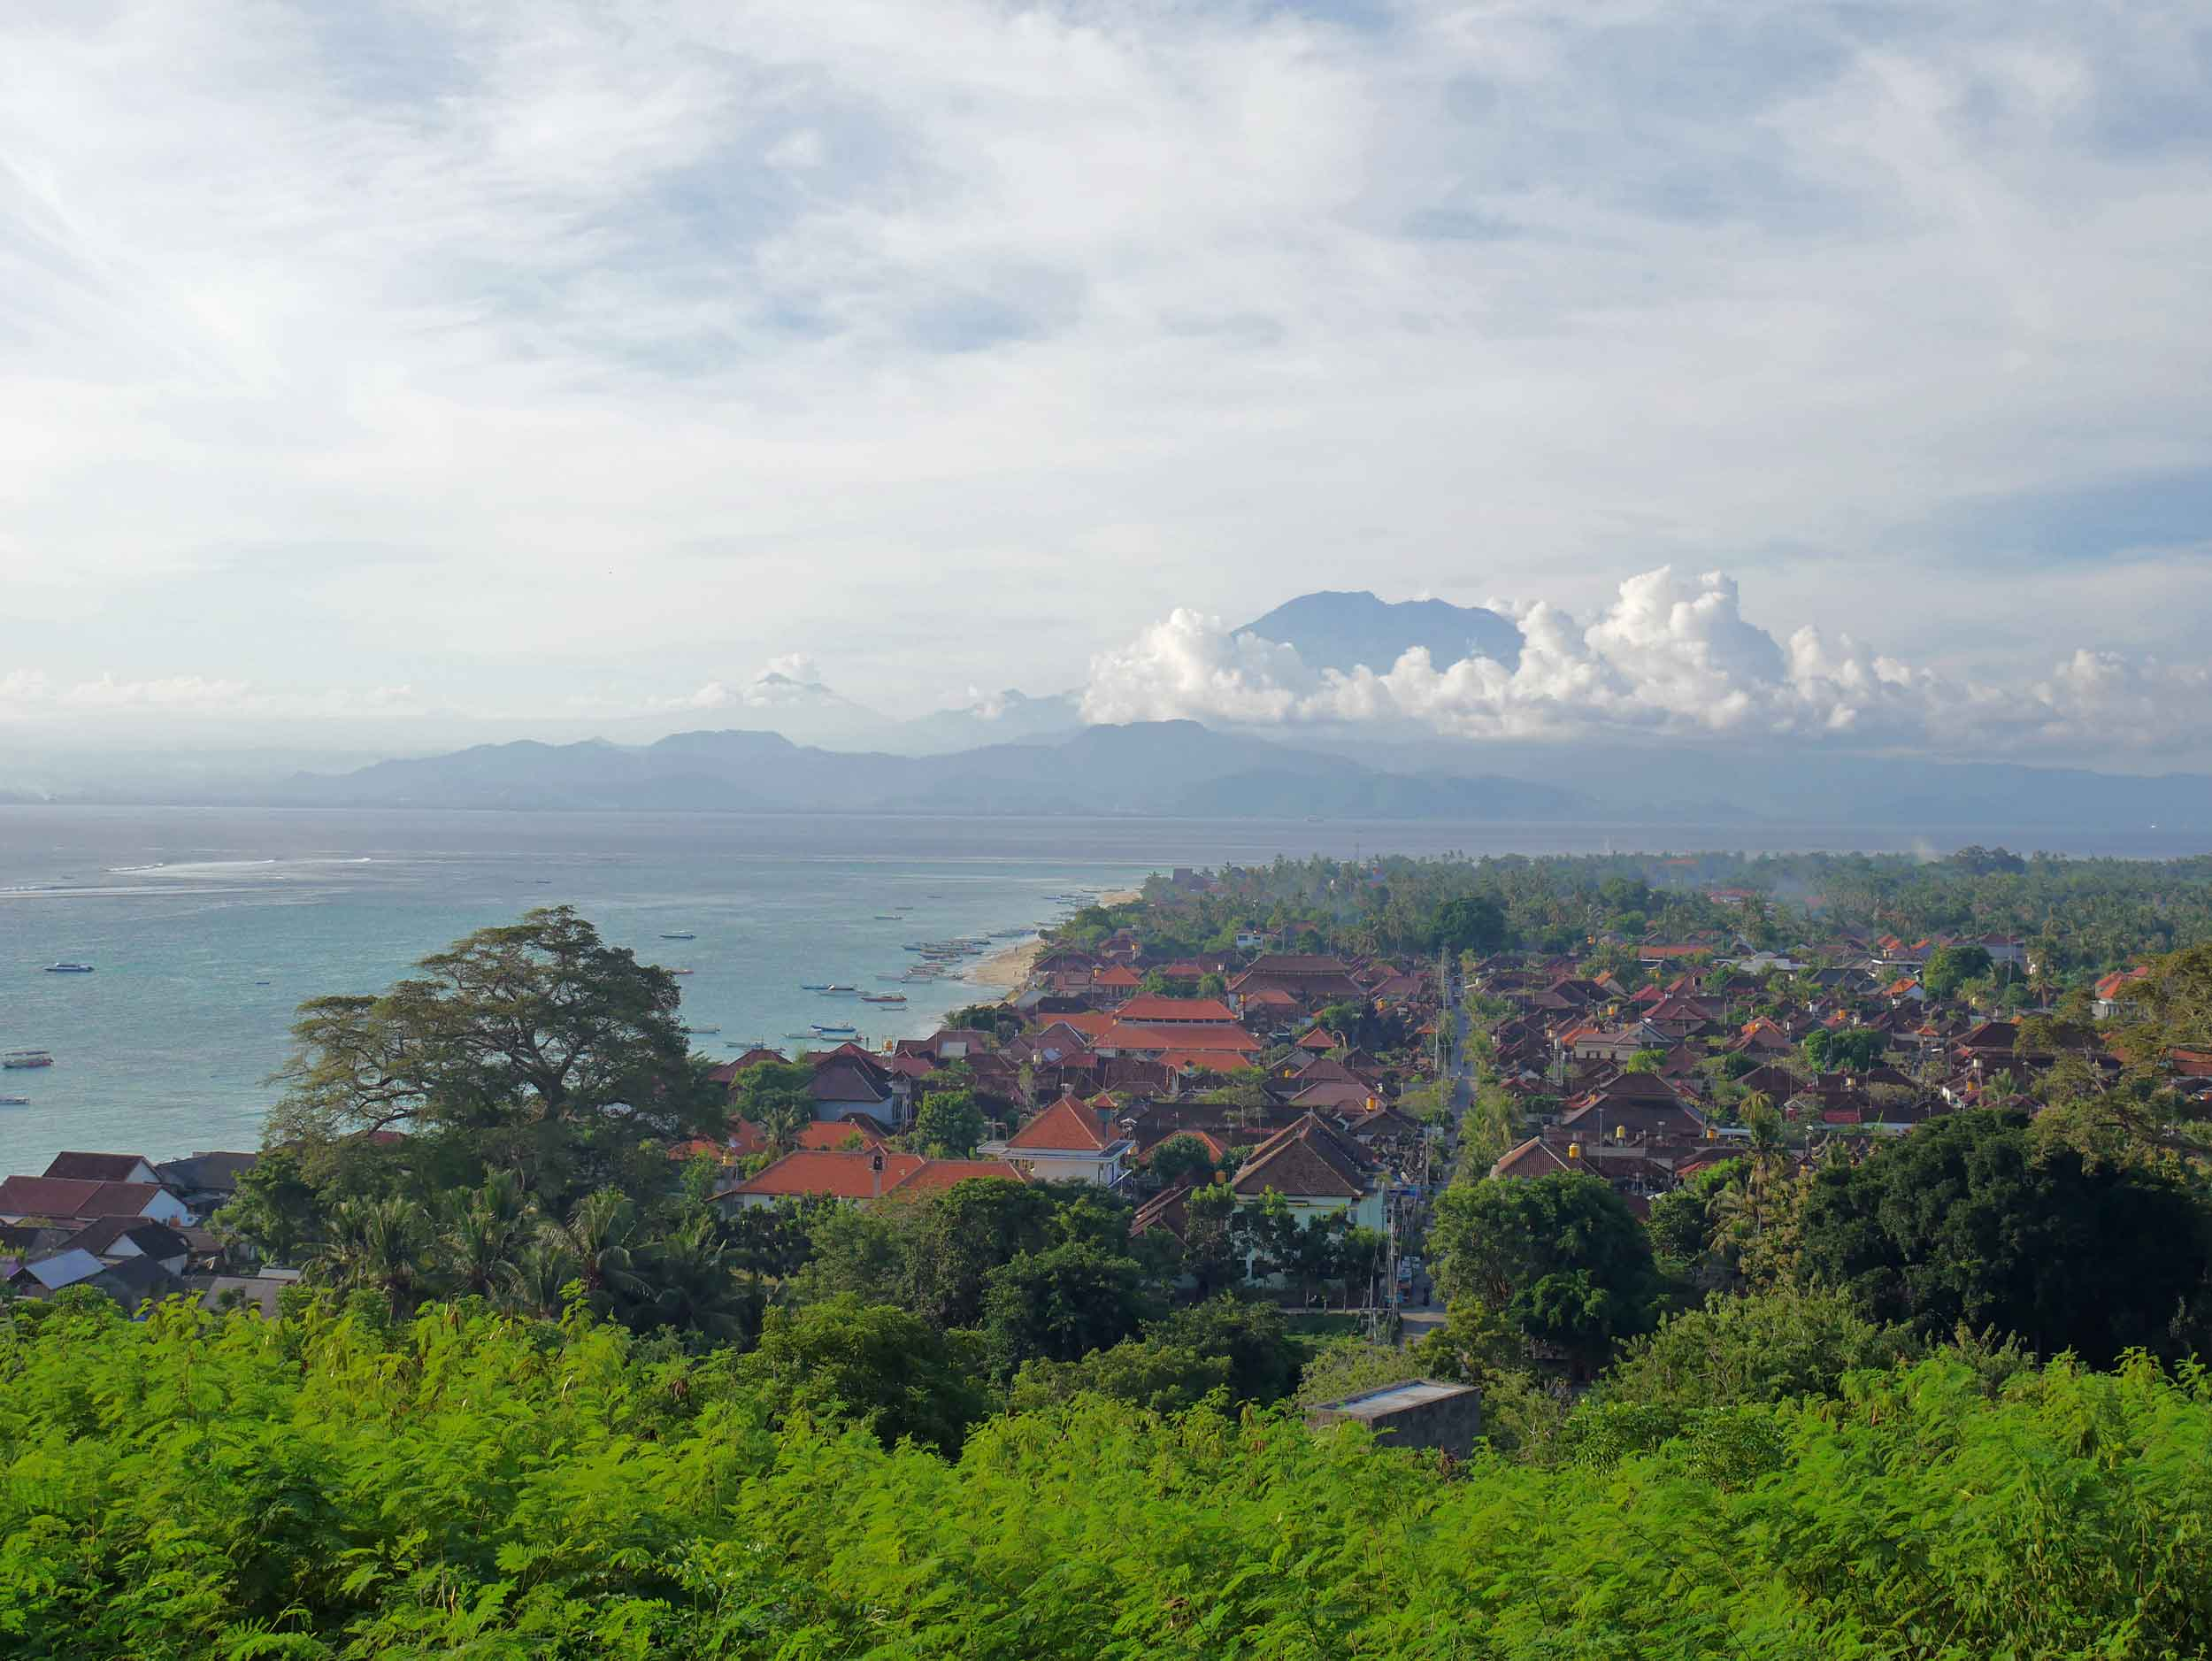 The view of Lembongan's port town with Bali's Mount Agung rising above the clouds in the background (May 16).